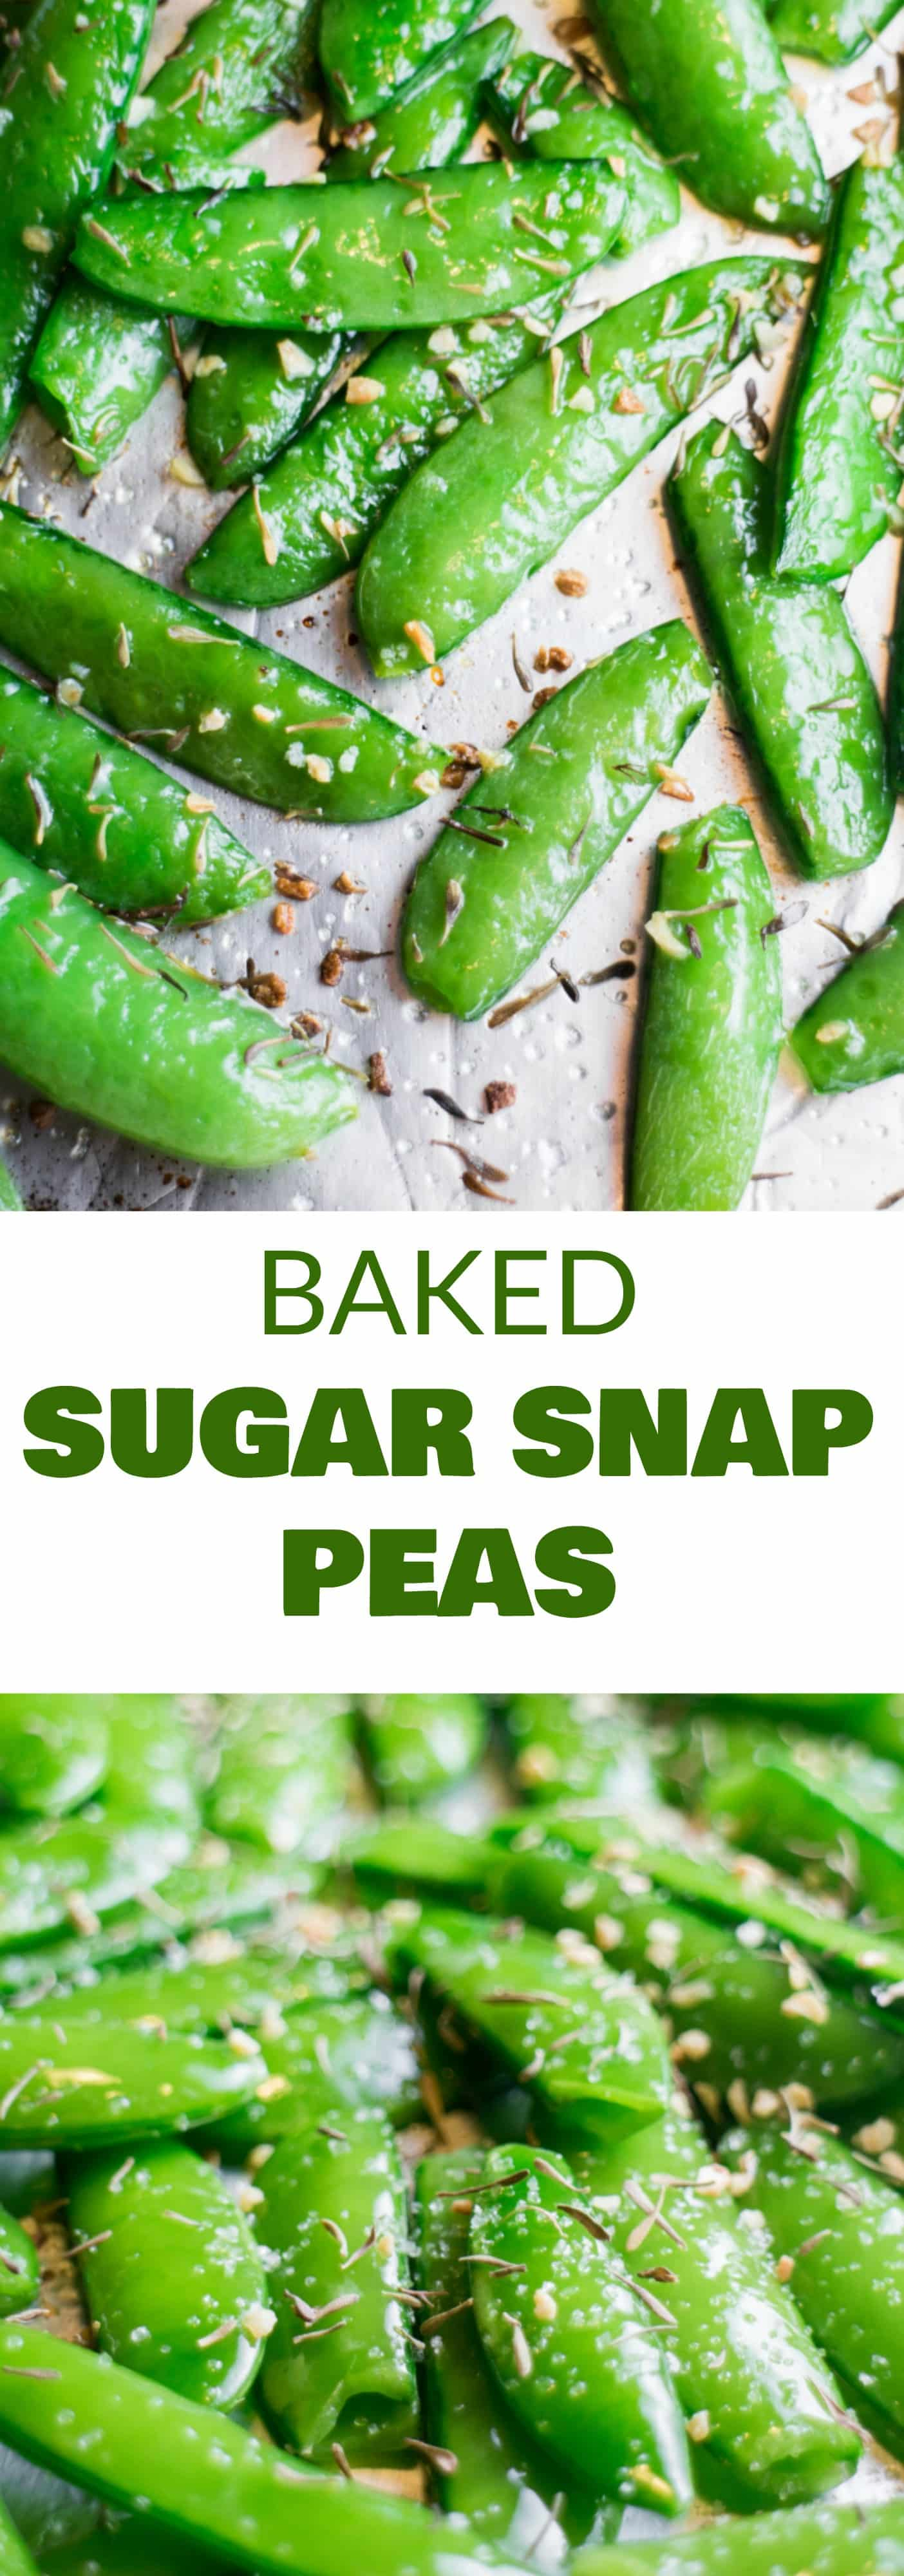 HEALTHY Baked Sugar Snap Peas are easy to make and ready in 8 minutes! Sprinkle with garlic, thyme and salt for a healthy snack! Adults and kids both love this easy delicious pea recipe!